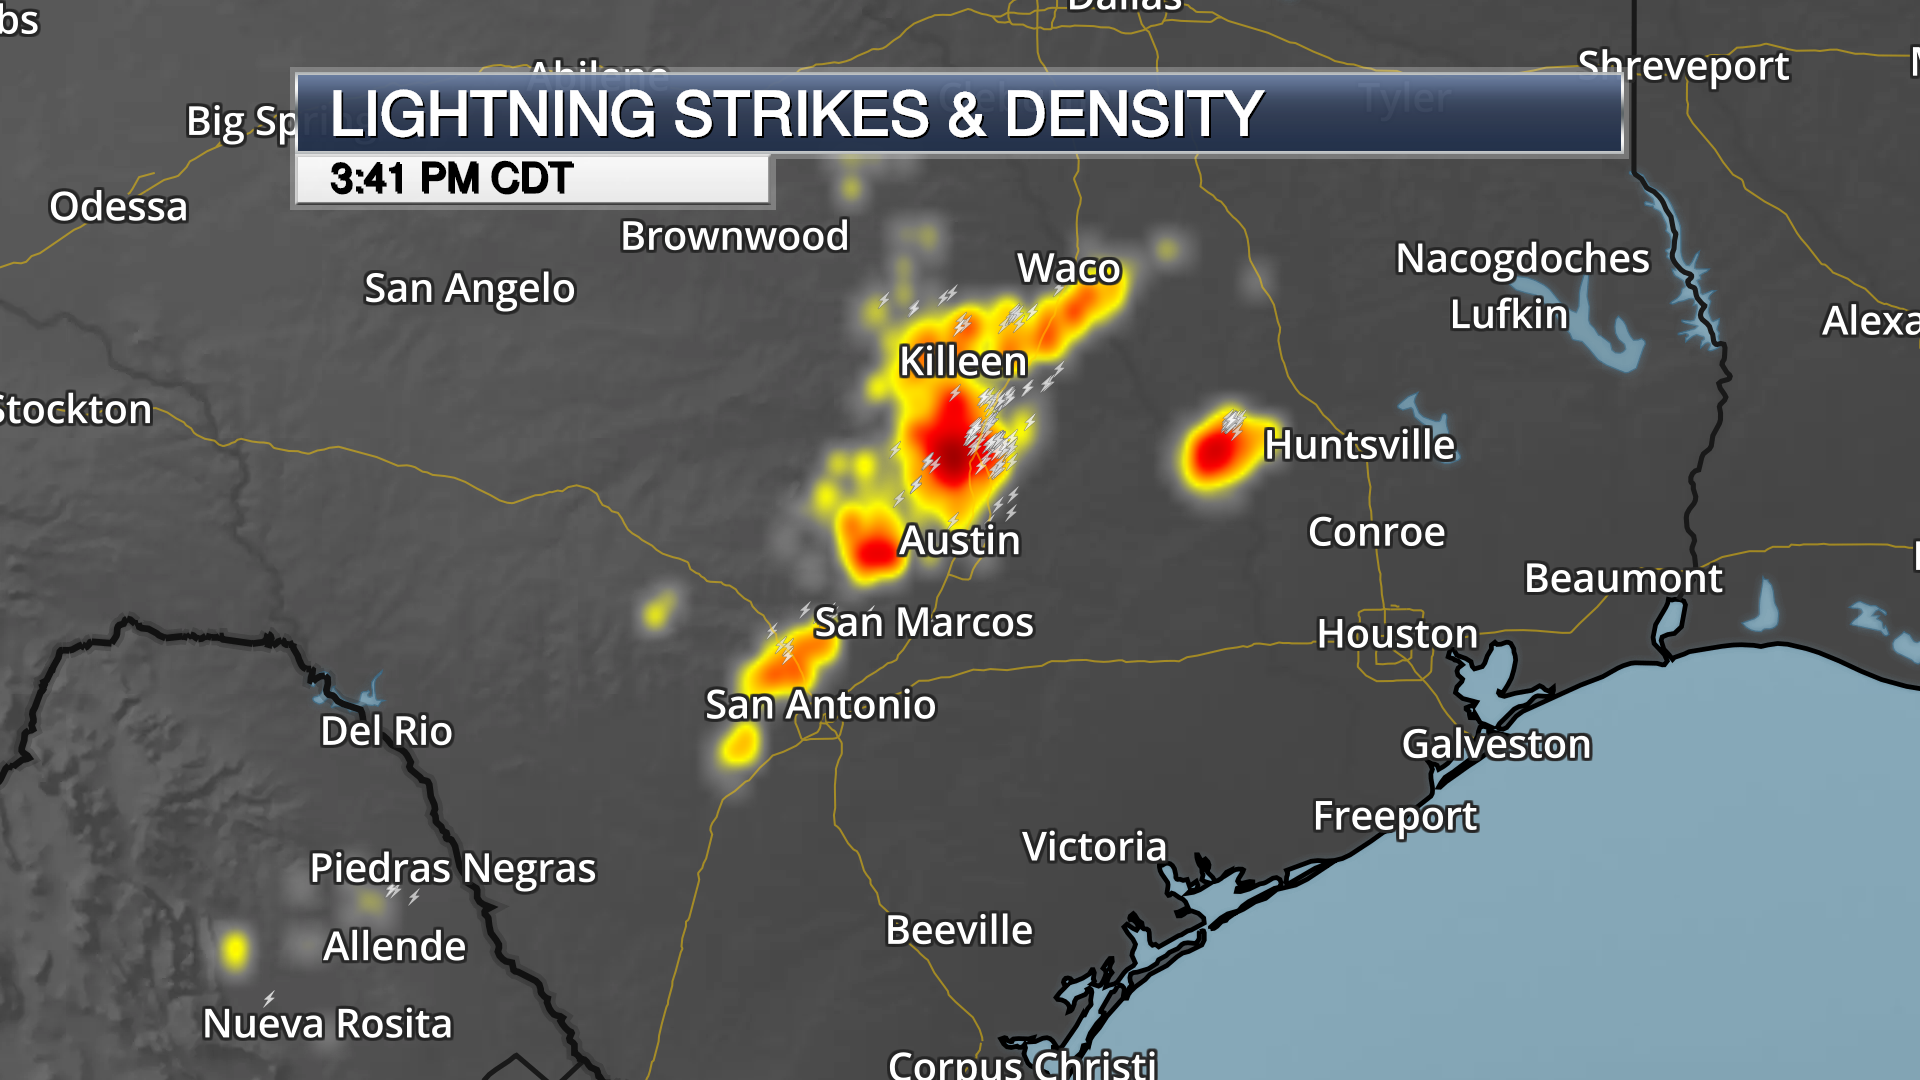 lightning density and lightning strike weather map on dark background